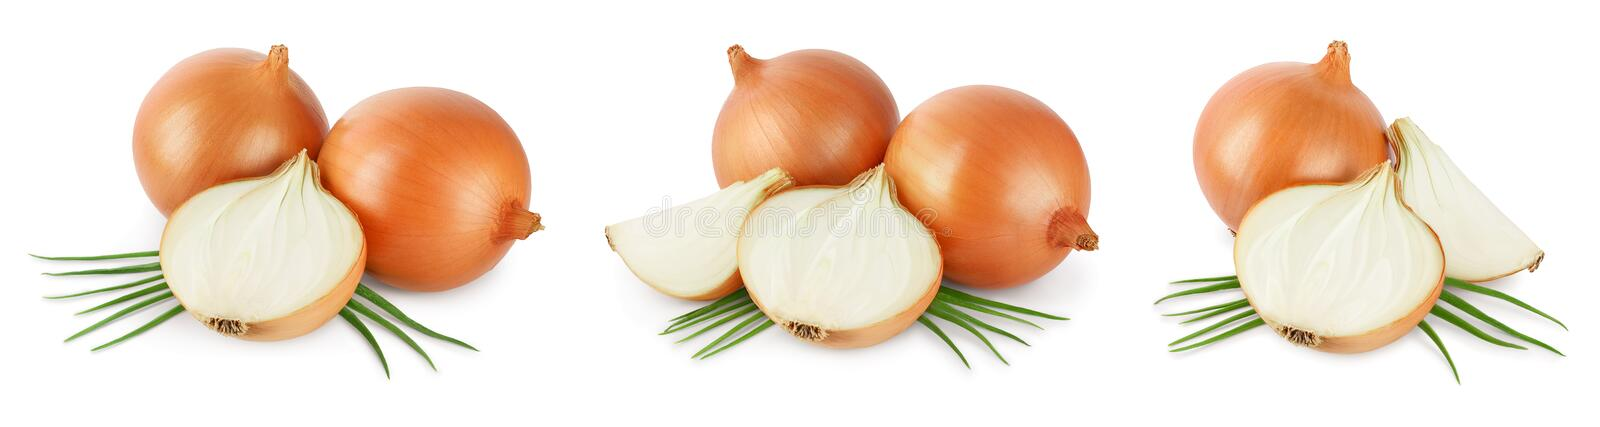 Yellow onion isolated on white background close up. Set or collection stock photography